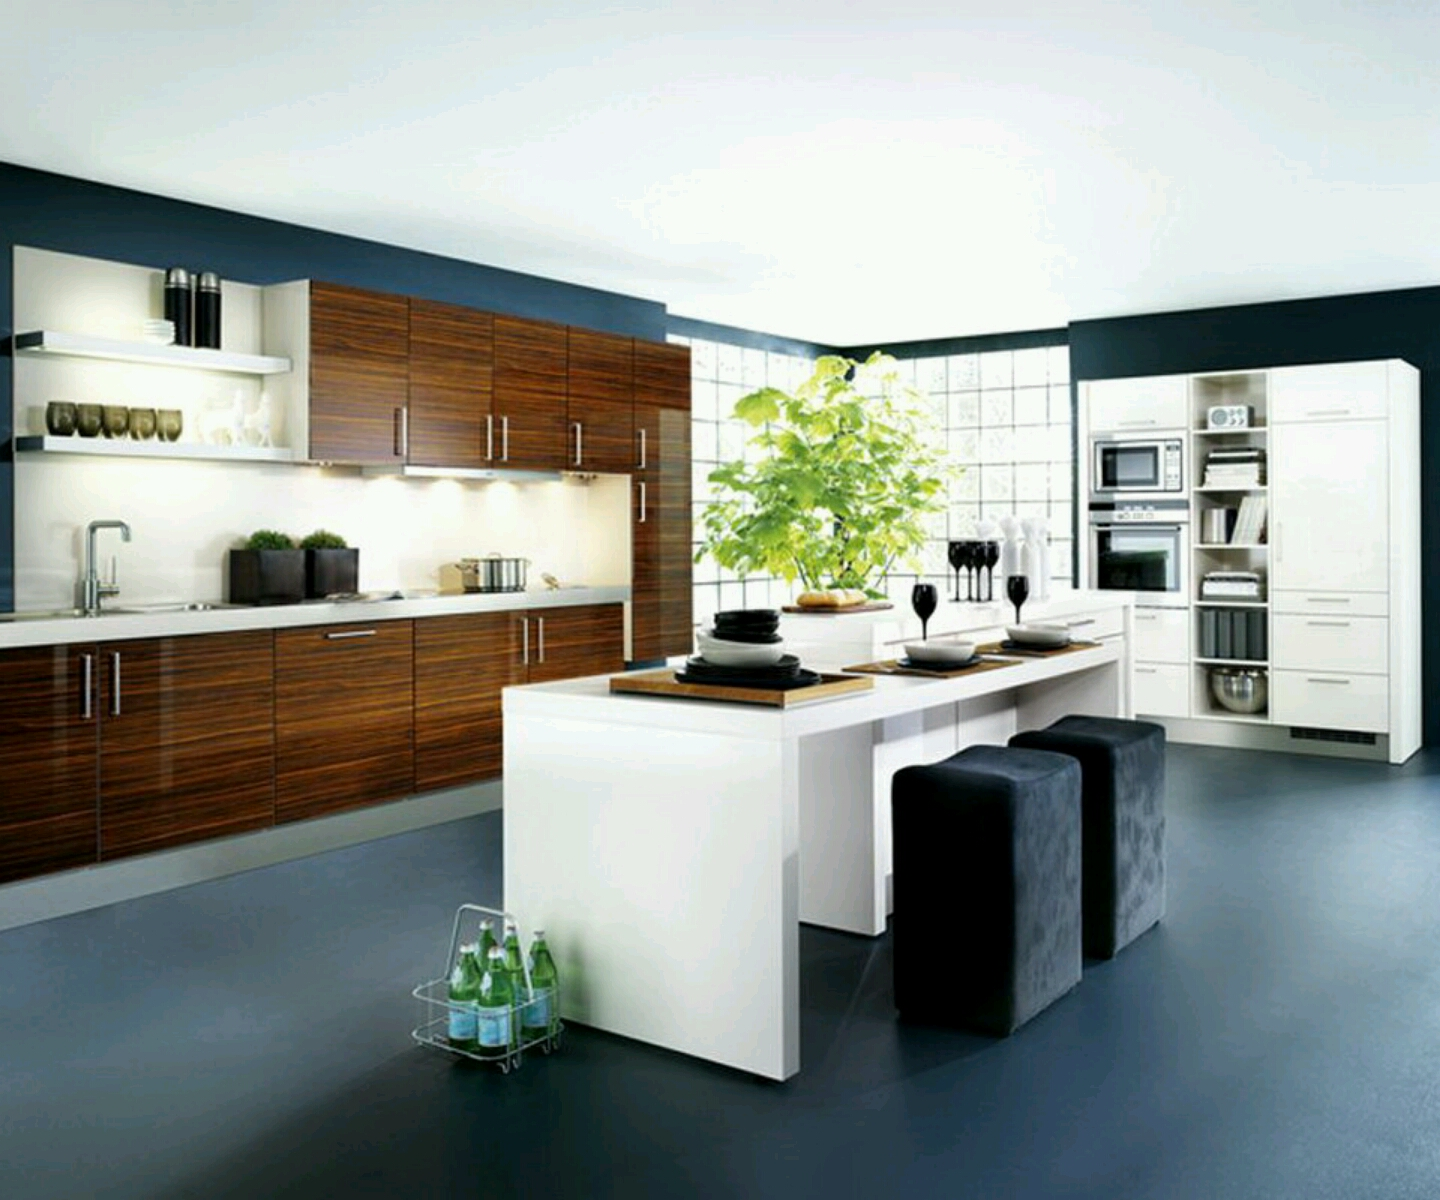 New home designs latest kitchen cabinets designs modern for New kitchen designs images